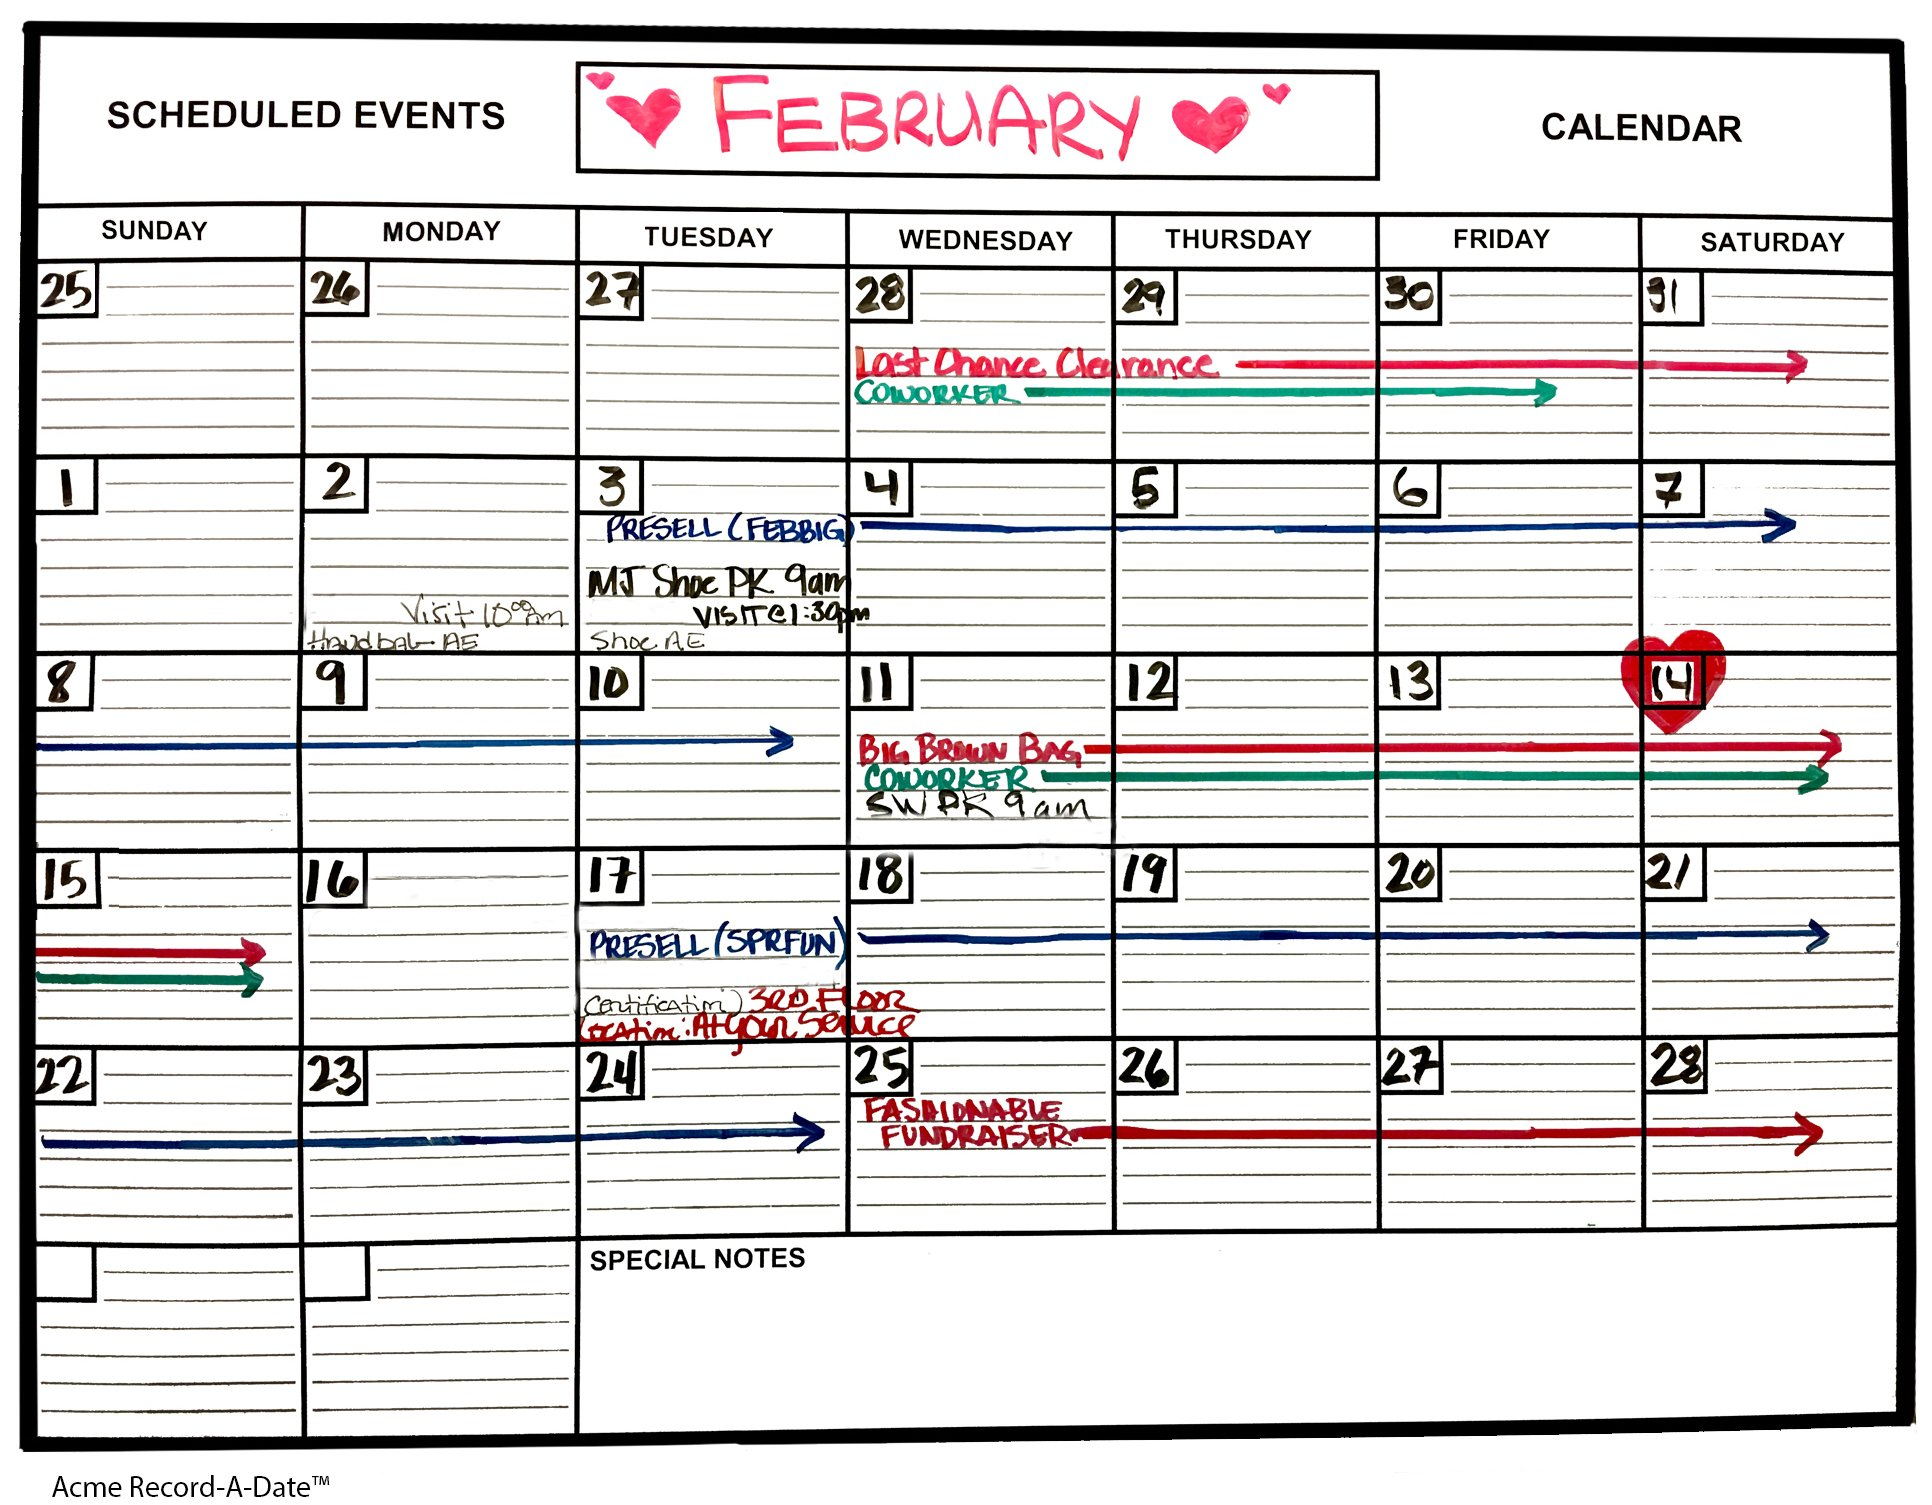 Whiteboard Dry Erase Monthly Calendar 1' x 2' Flexible Durable Sheet Material - Best for Goals Current Events By Acme Record A Date Offer Easy to Install Stick or Tack for Home School Business